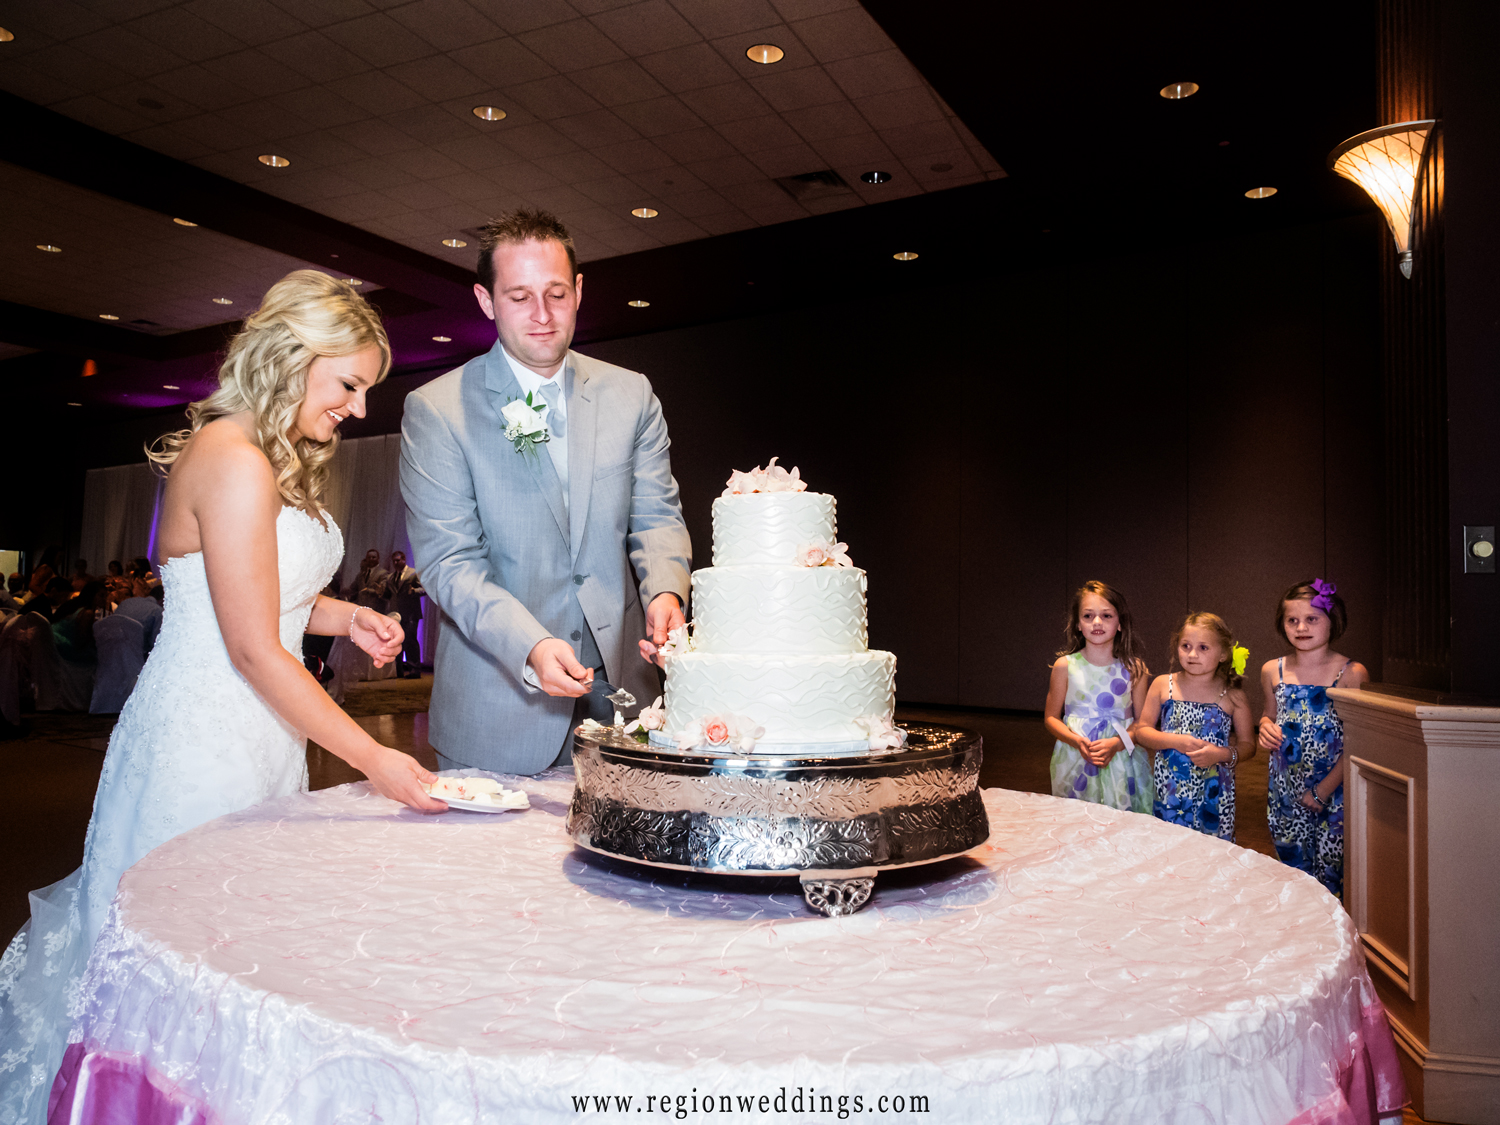 Future brides and future clients photo bomb the couple as they cut their wedding cake.